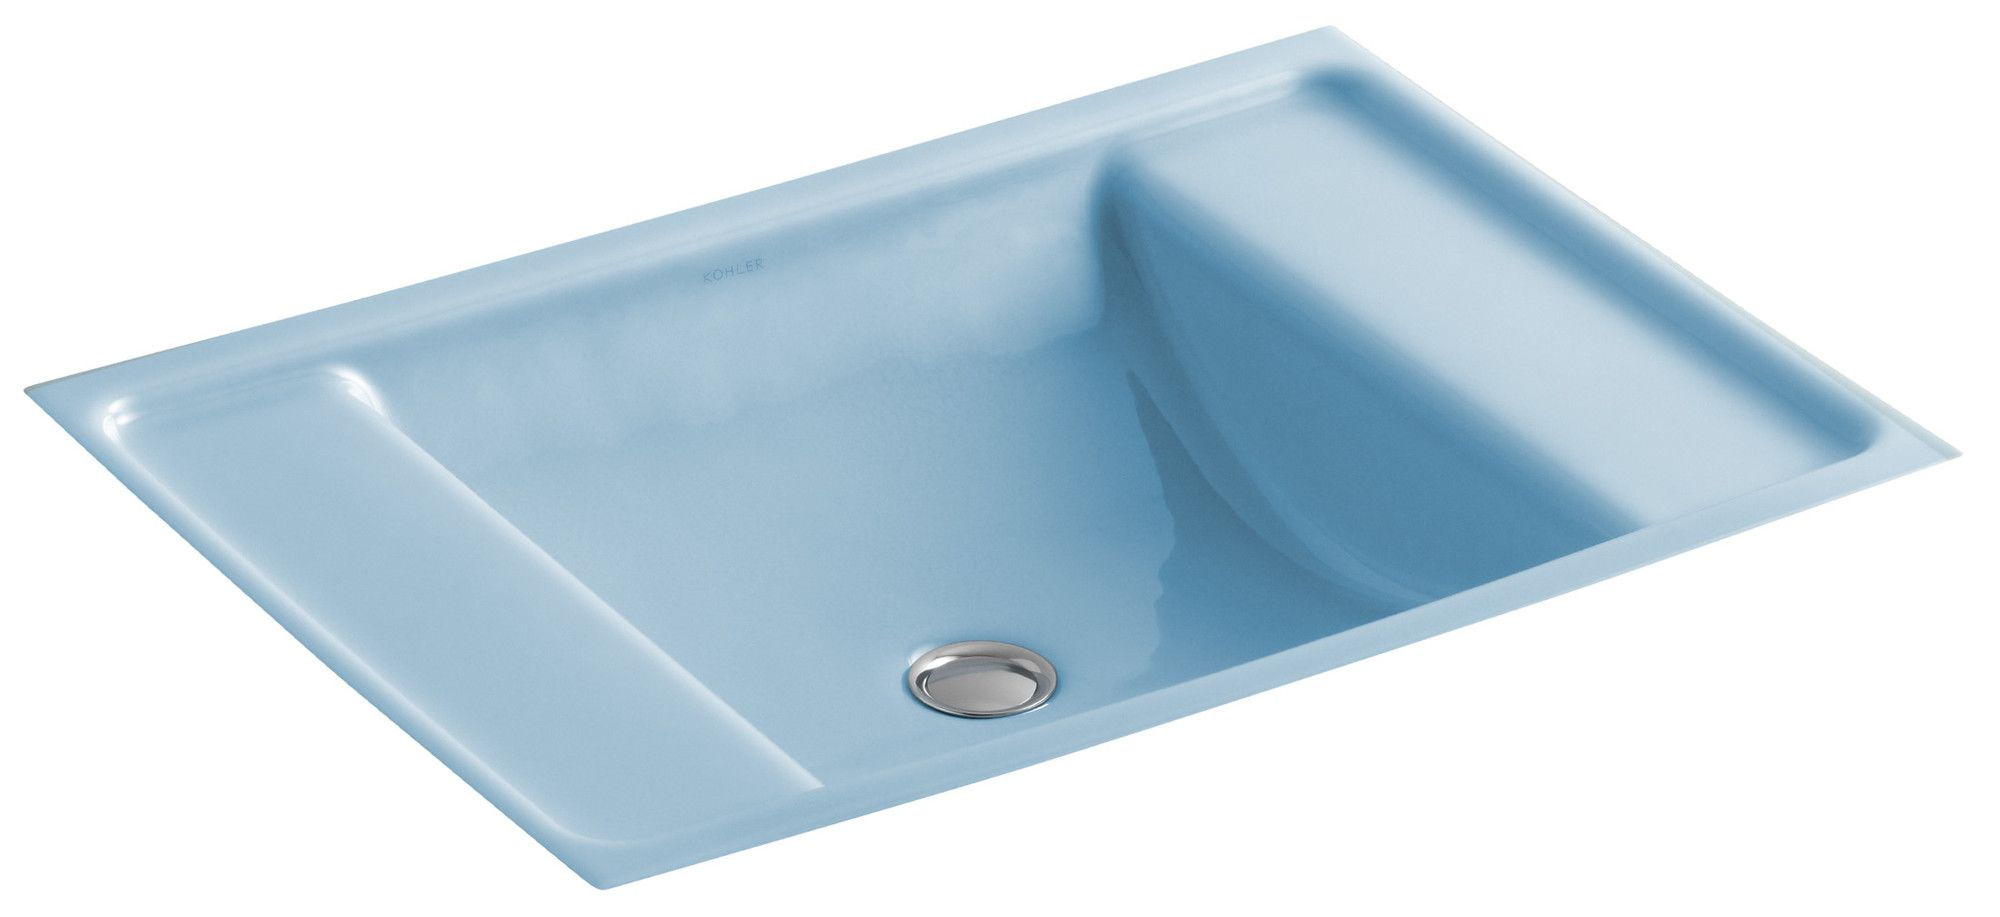 Ledges Undermount Bathroom Sink | Products | Pinterest | Products